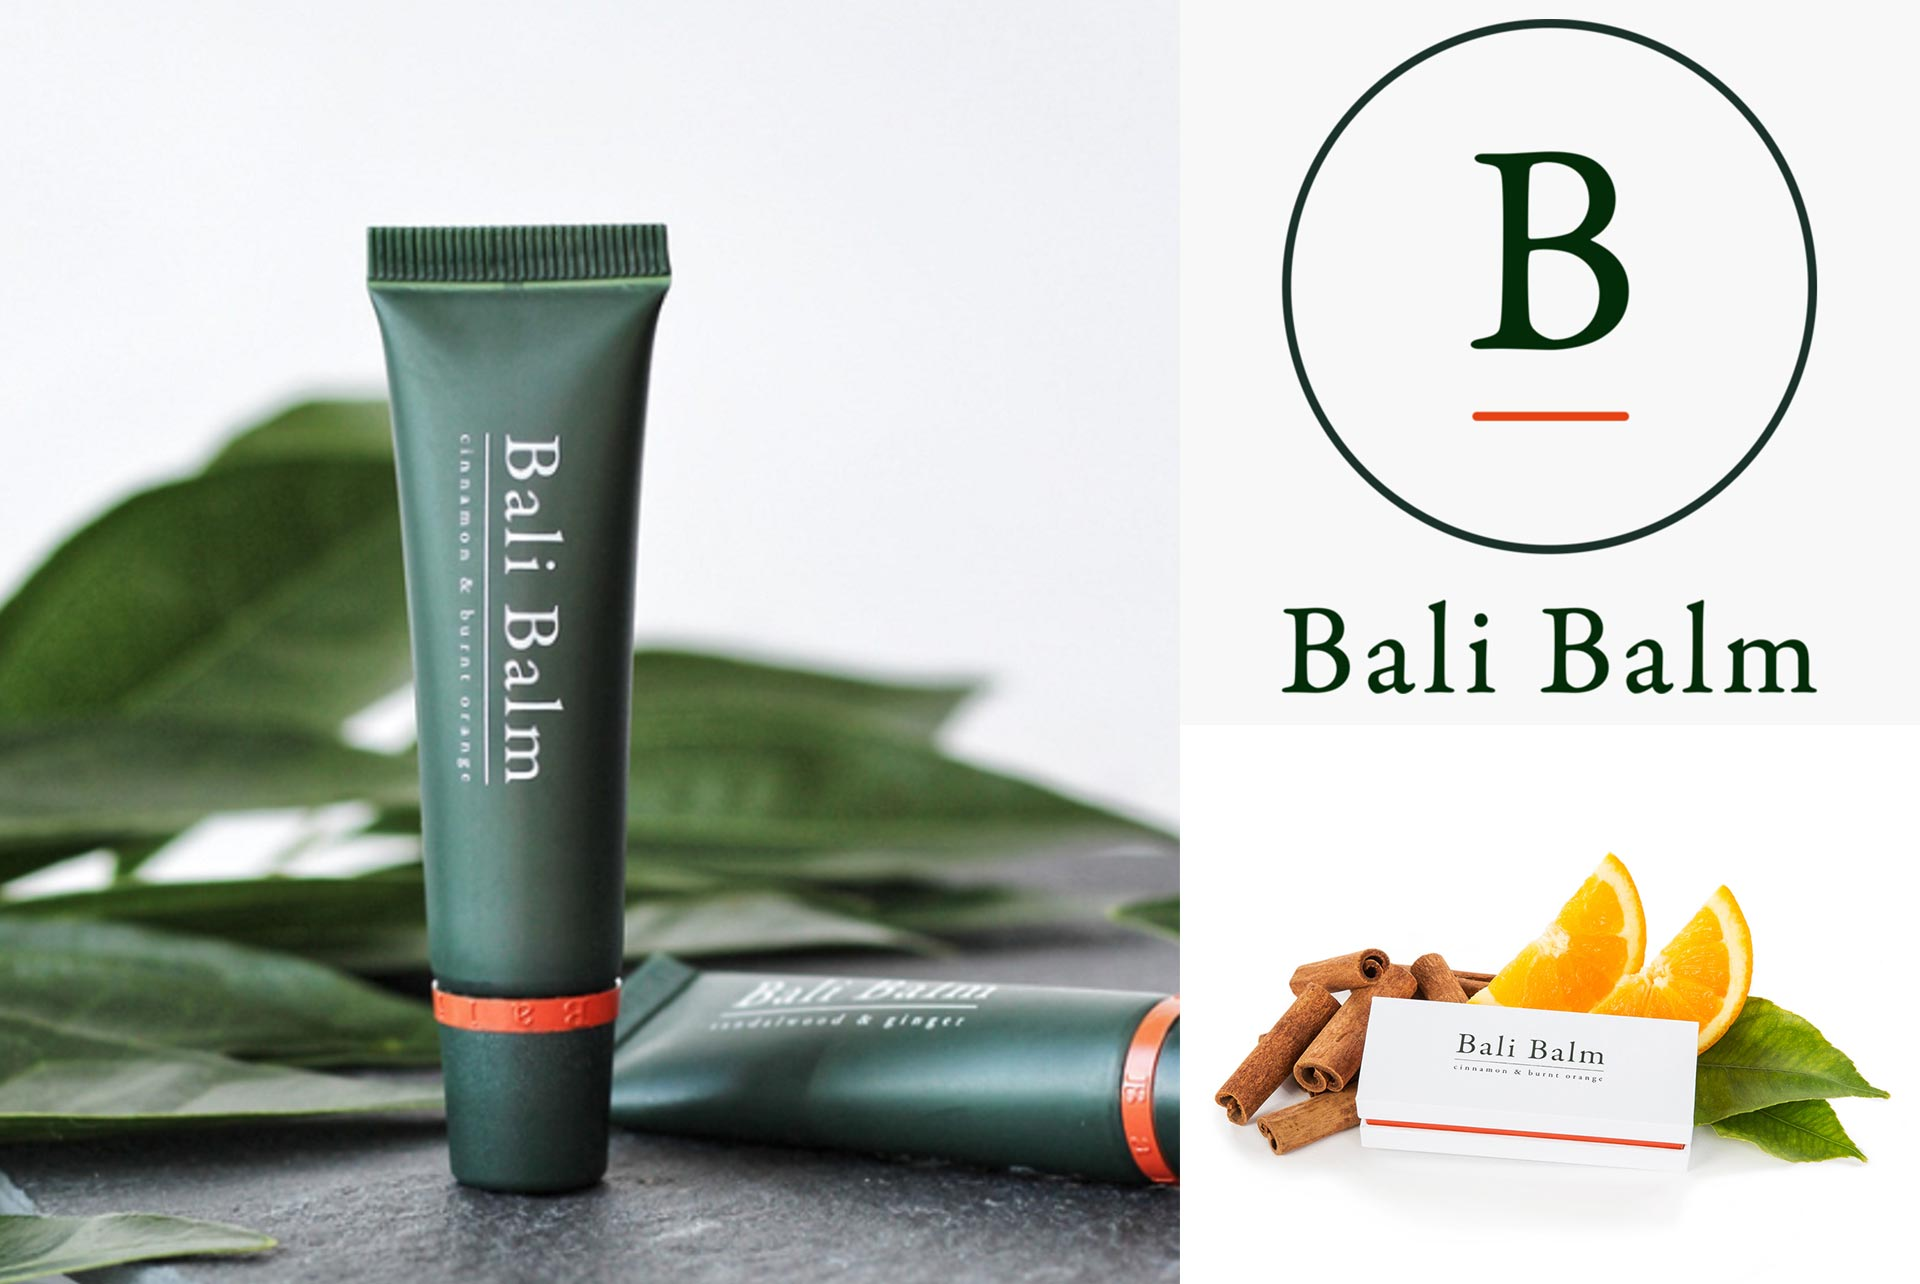 Is Bali Balm Cruelty-Free & Vegan?